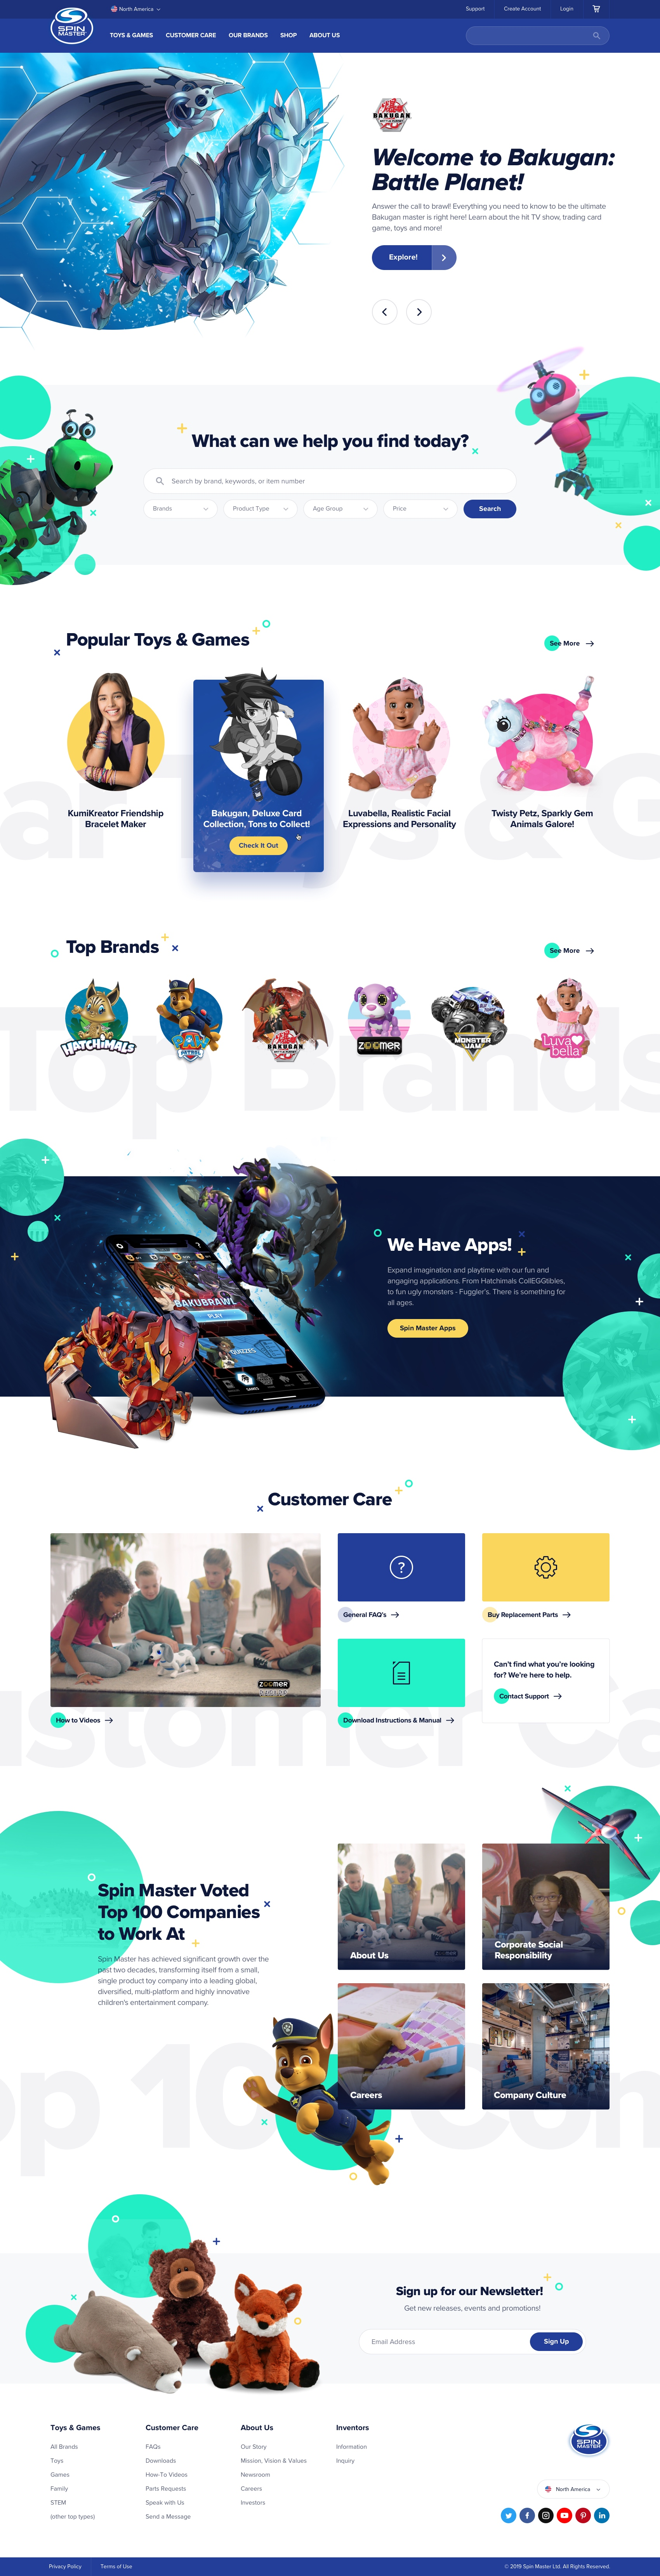 Spin Master Home Page Design - First Concept